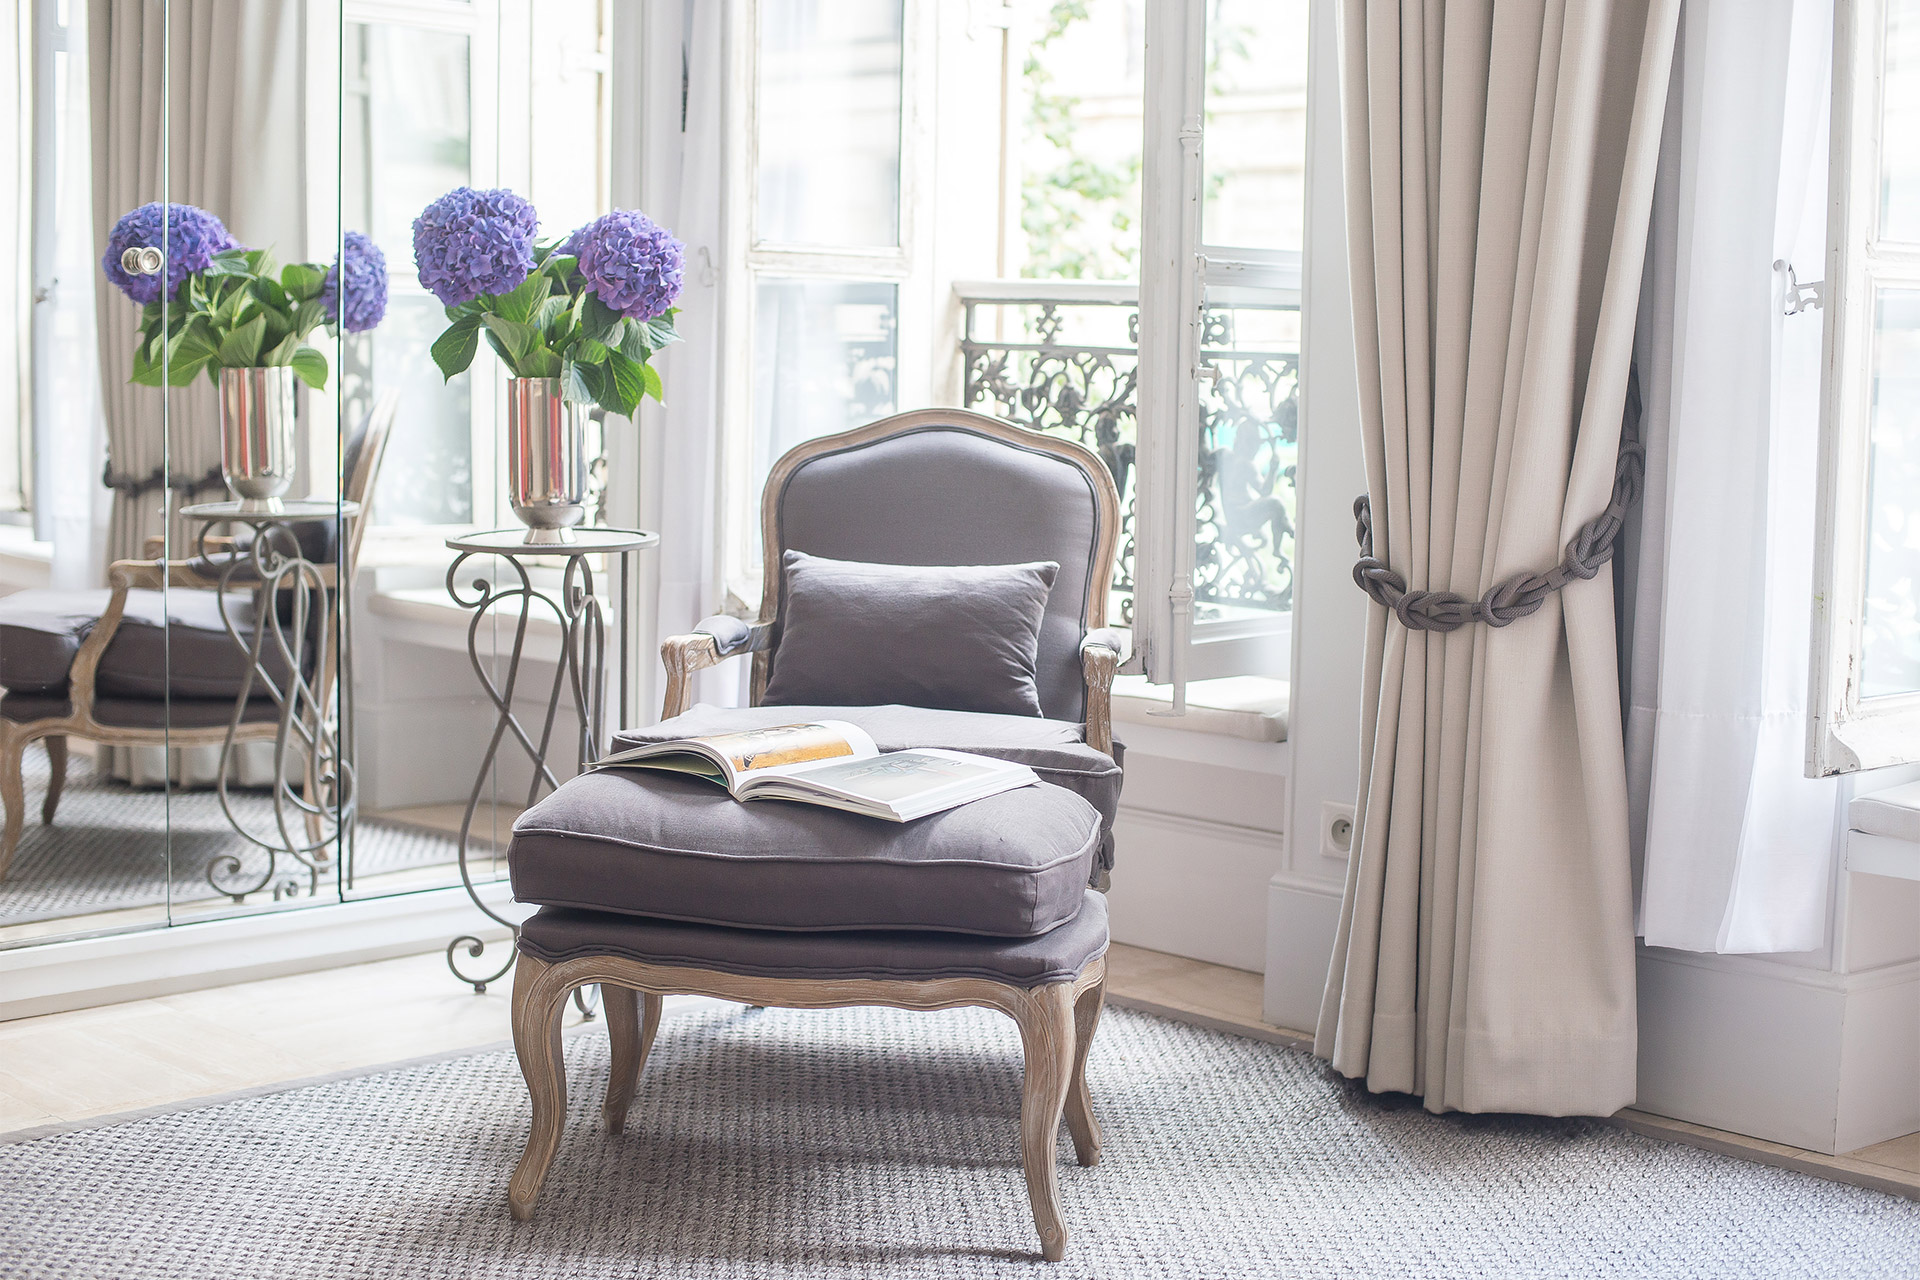 Spend peaceful evenings relaxing in your very own Parisian apartment